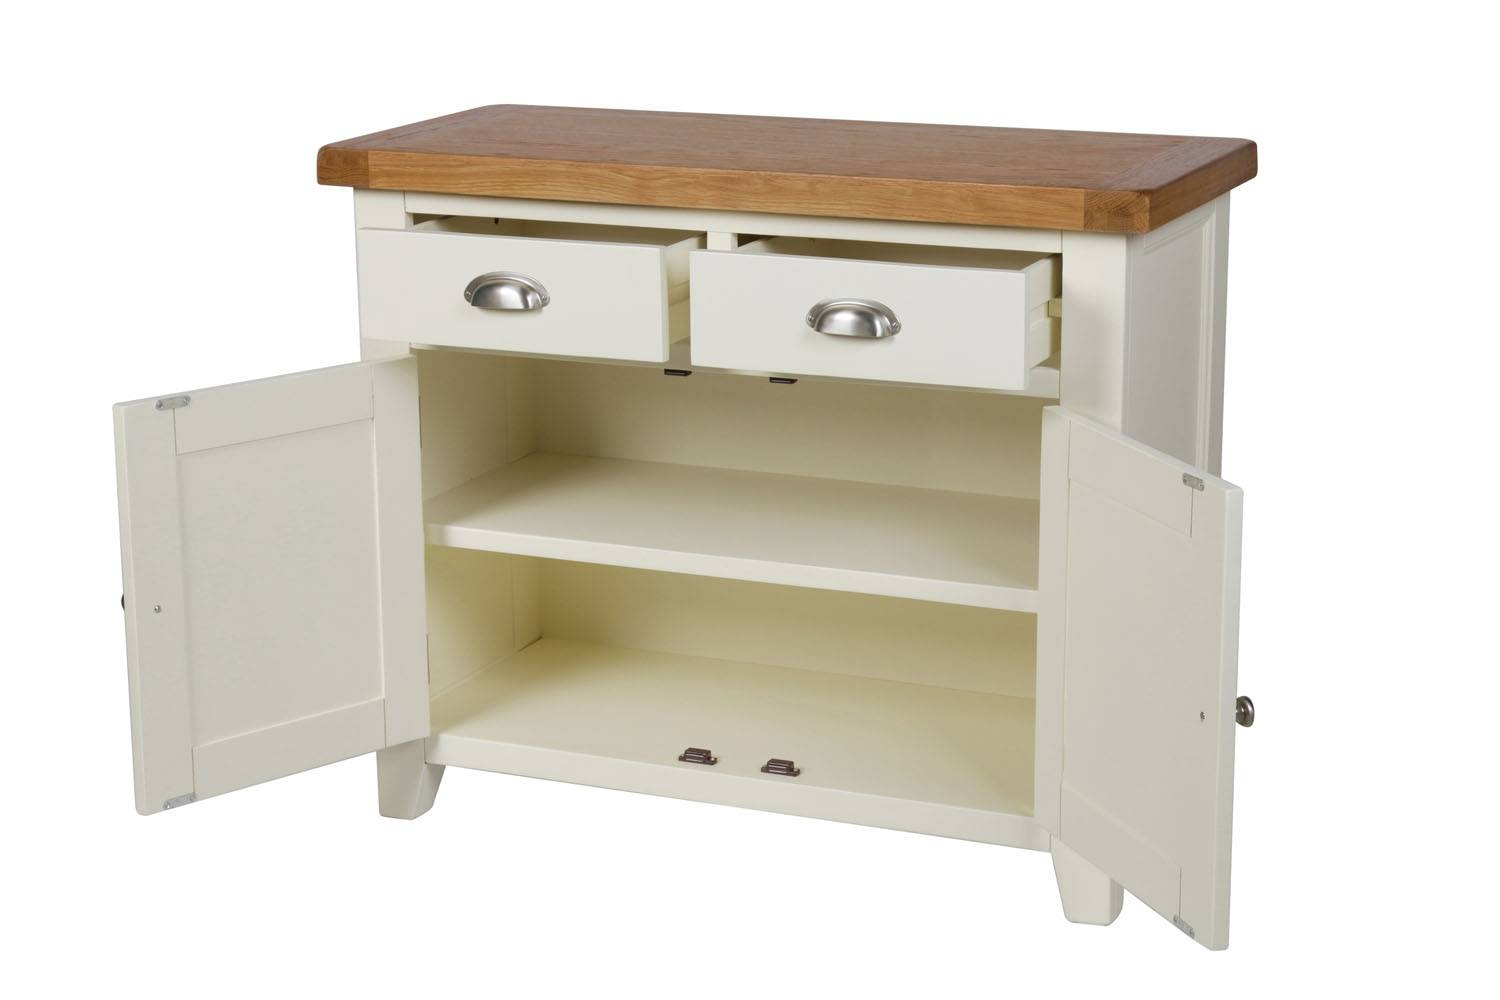 Country Cottage 100Cm Cream Painted Oak Sideboard with regard to Cream and Oak Sideboards (Image 2 of 15)